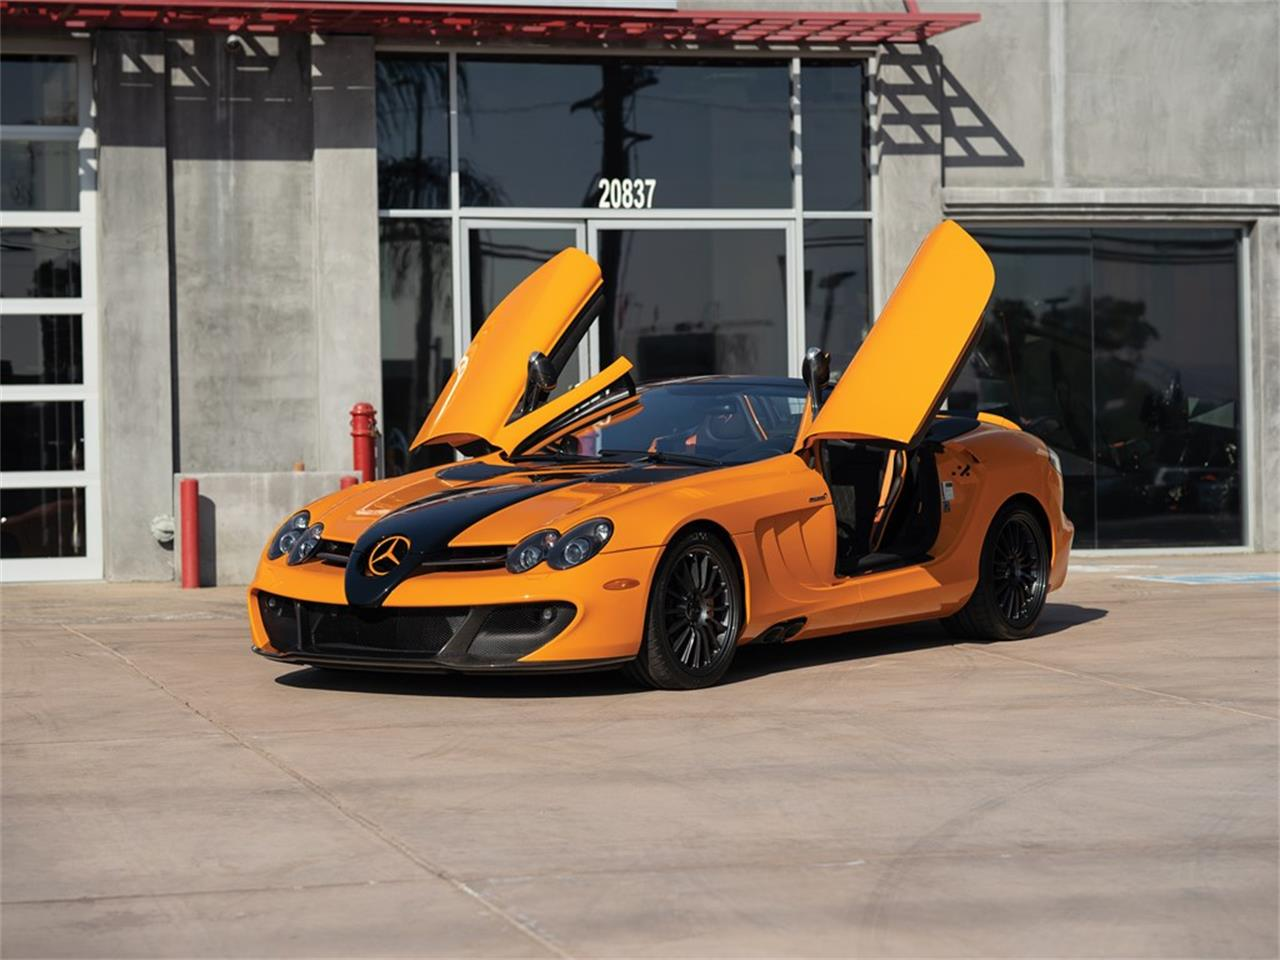 f2f3e25f08bfc Large Picture of  09 Mercedes-Benz SLR McLaren 722 S Roadster  McLaren  Edition